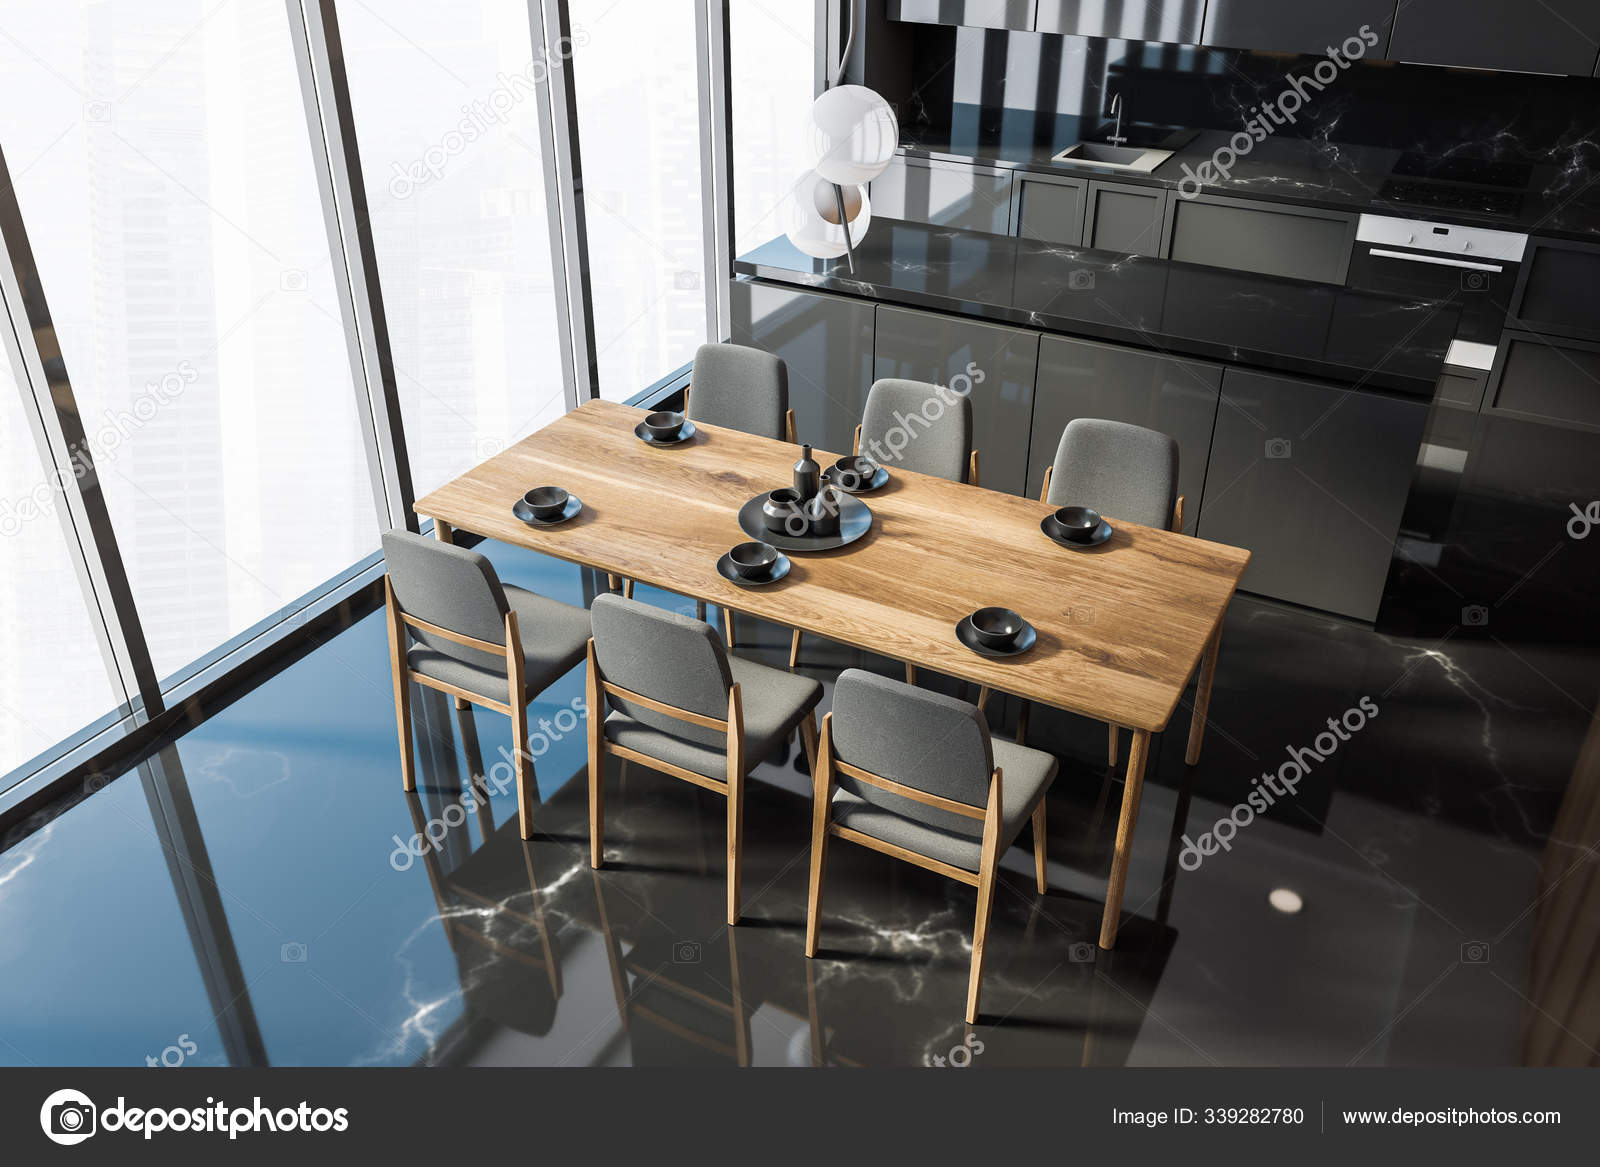 Picture of: Black Marble Kitchen With Table Top View Stock Photo C Denisismagilov 339282780